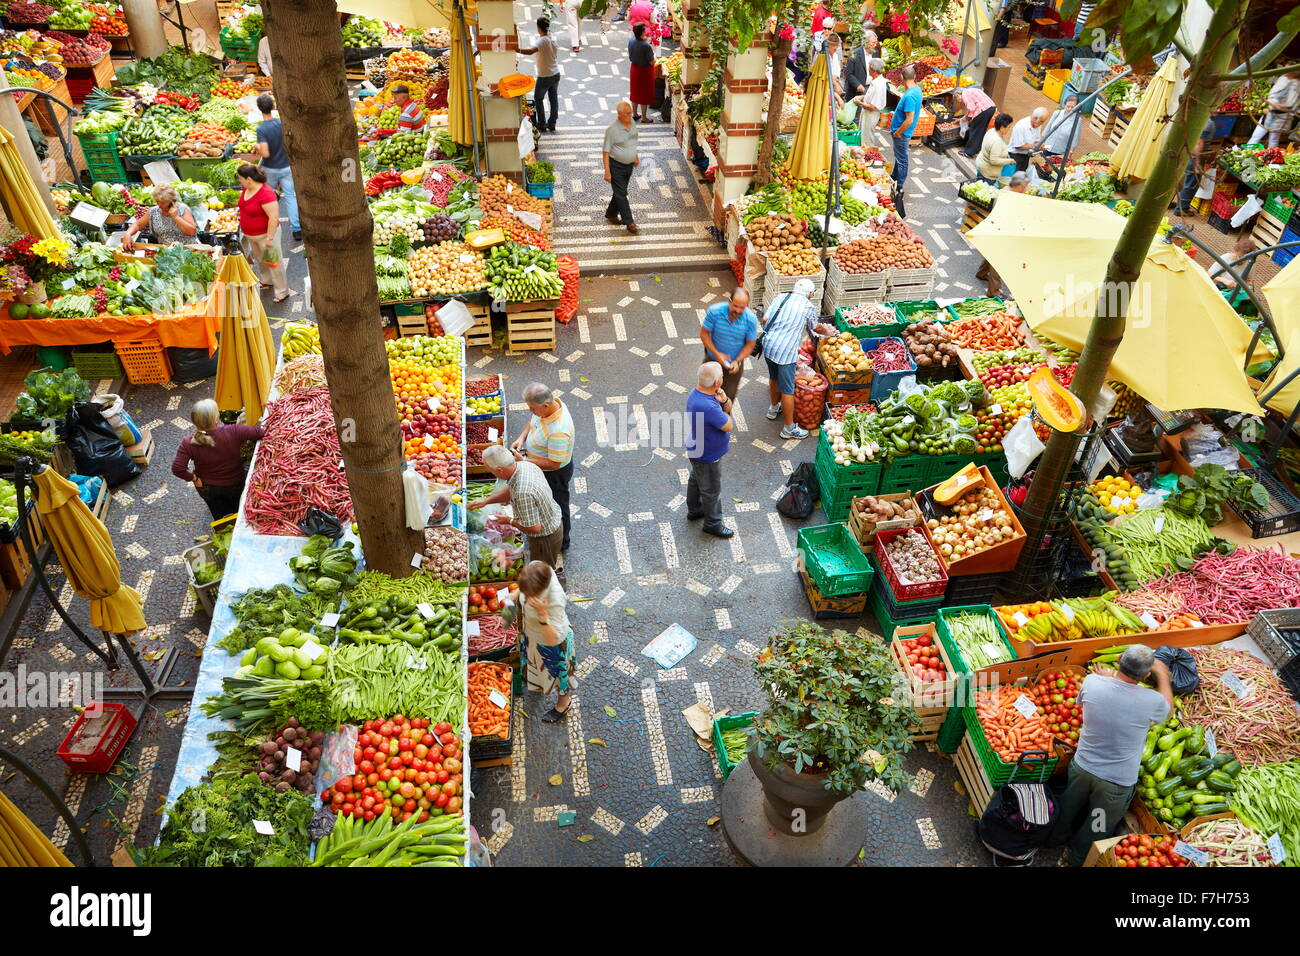 Mercado dos lavradores, fresh fruit and vegetables in the Funchal market, Madeira island, Portugal - Stock Image